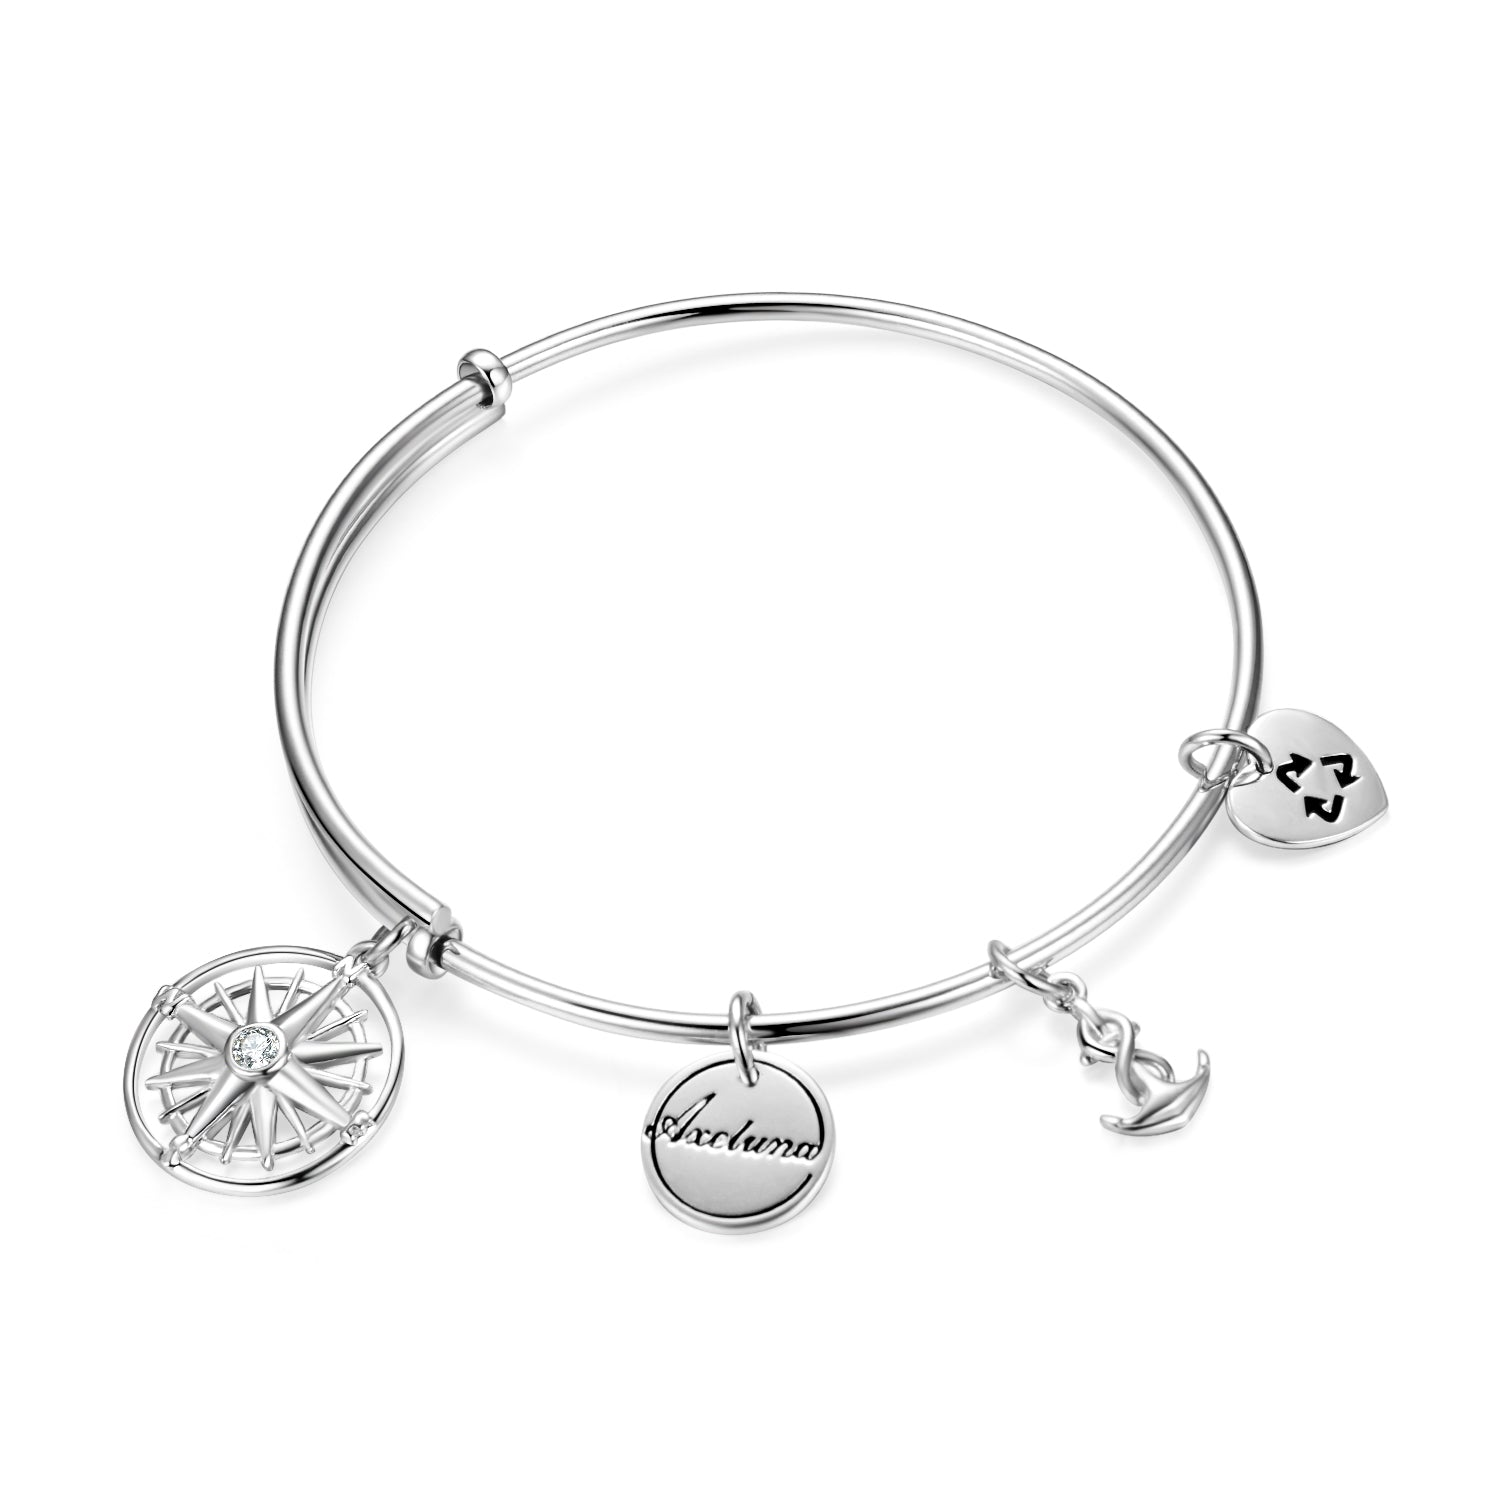 My Sallor Enjoy The Journey Bangle Many Round Disc Charms Bracelet